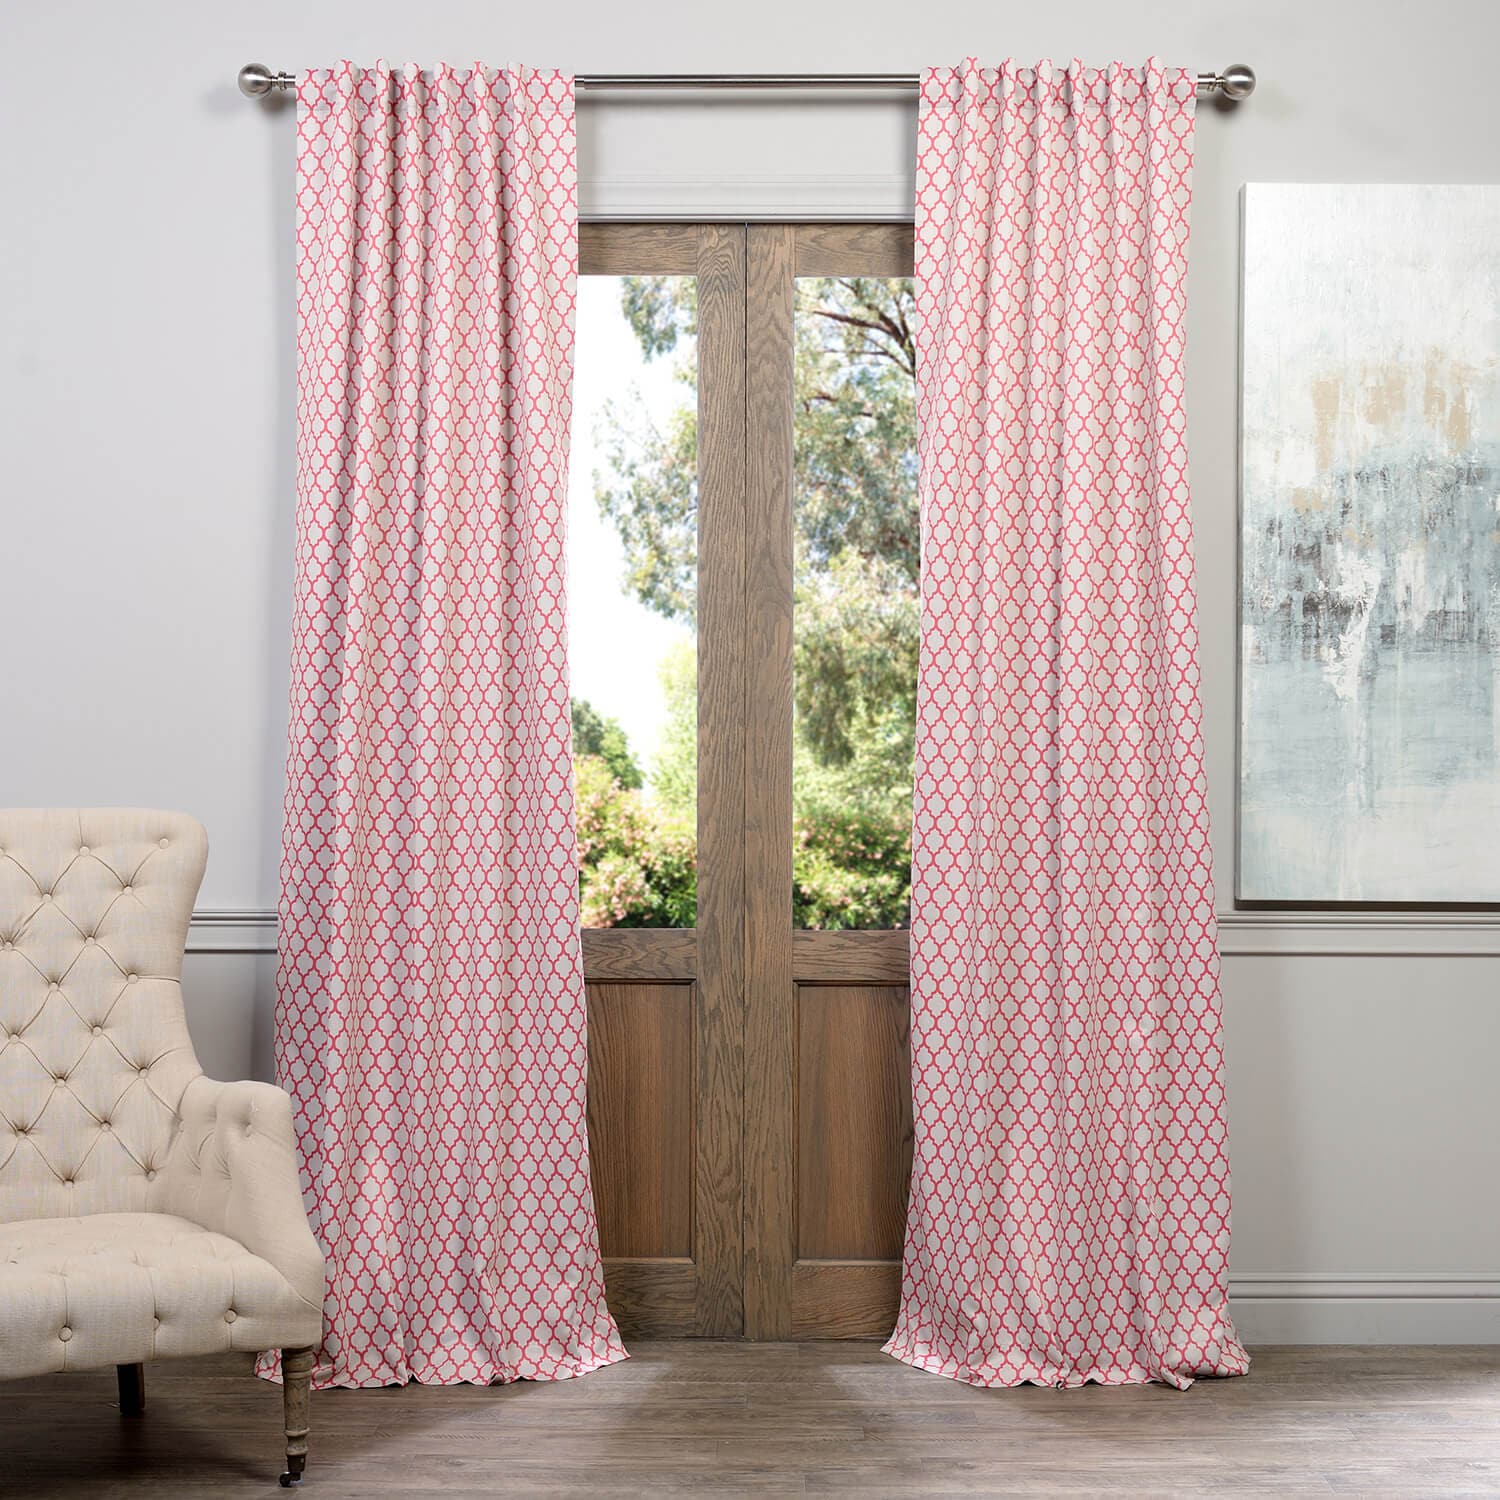 Casablanca Rose Room Darkening Curtain